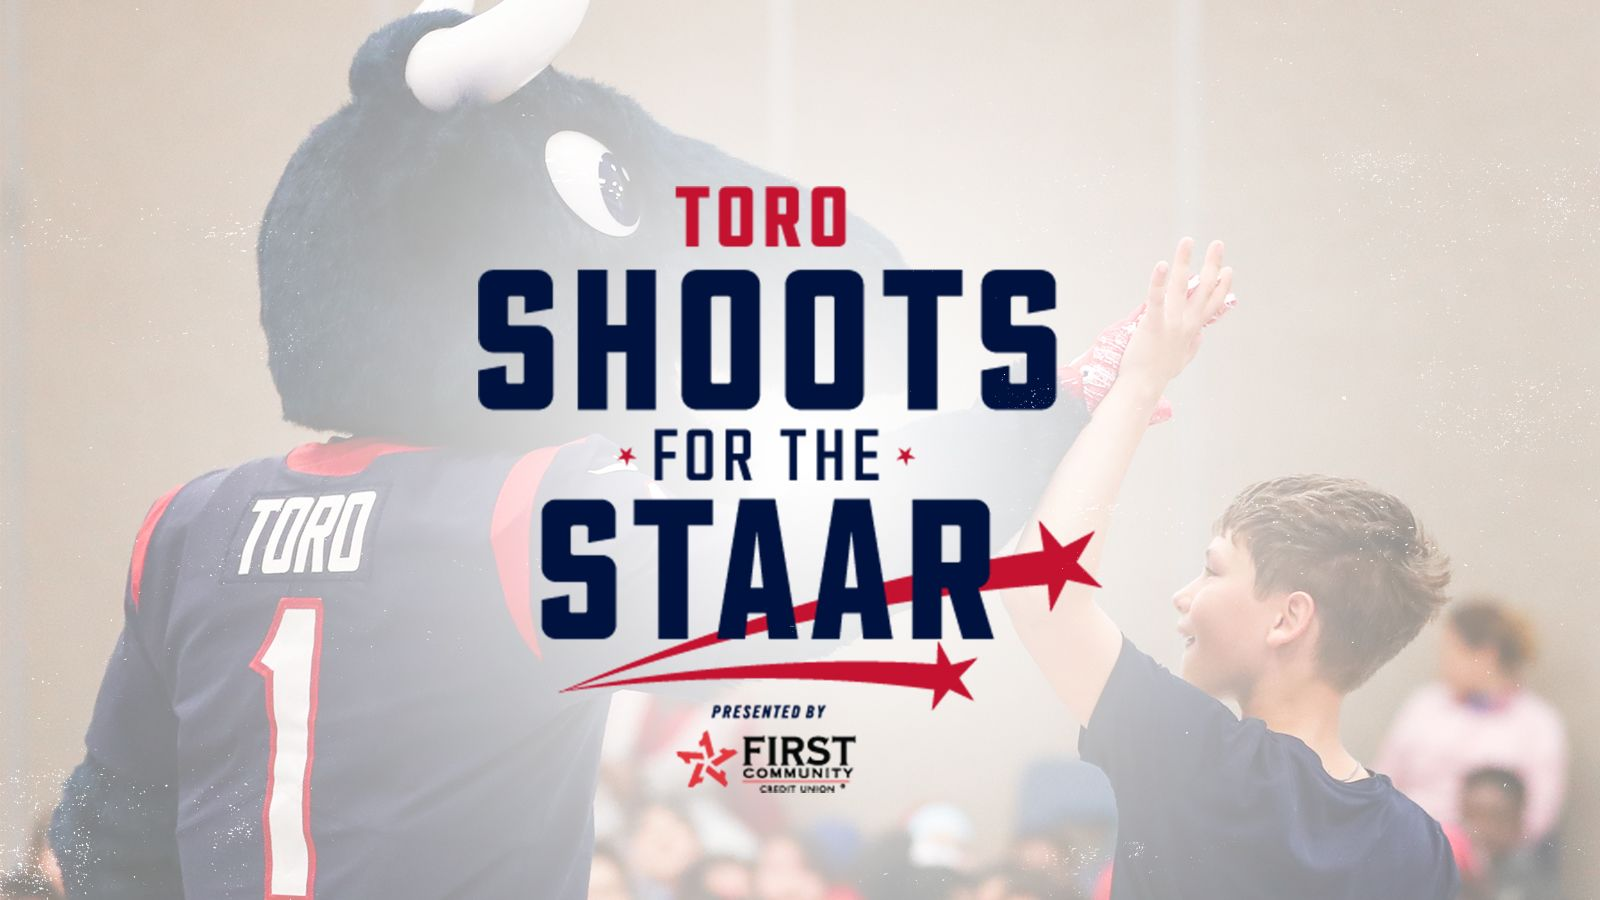 TORO Shoots for the STAAR. presented by First Community Credit Union